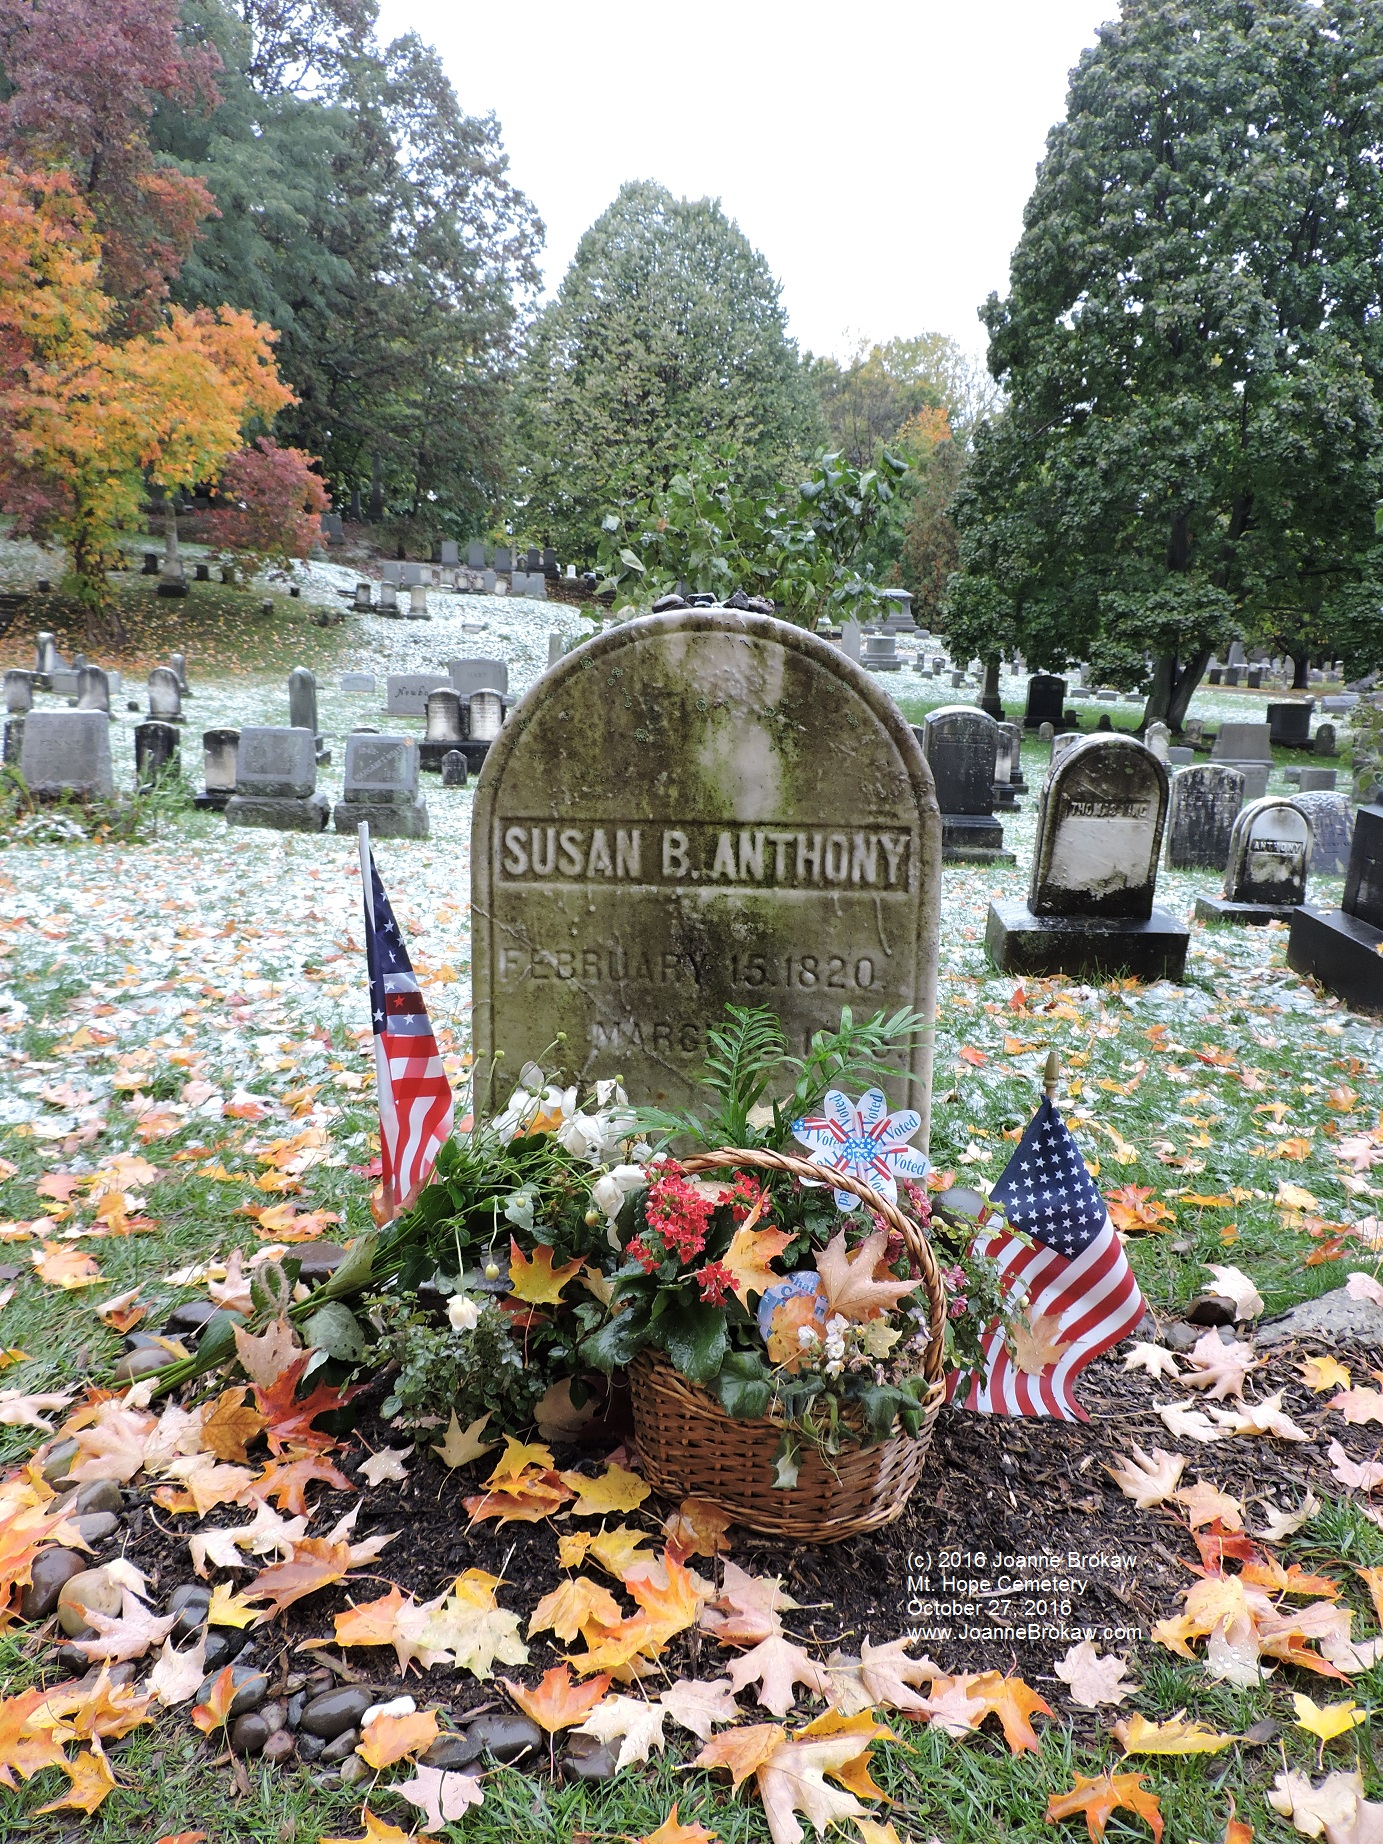 The grave site of Susan B. Anthony, in October 2016.